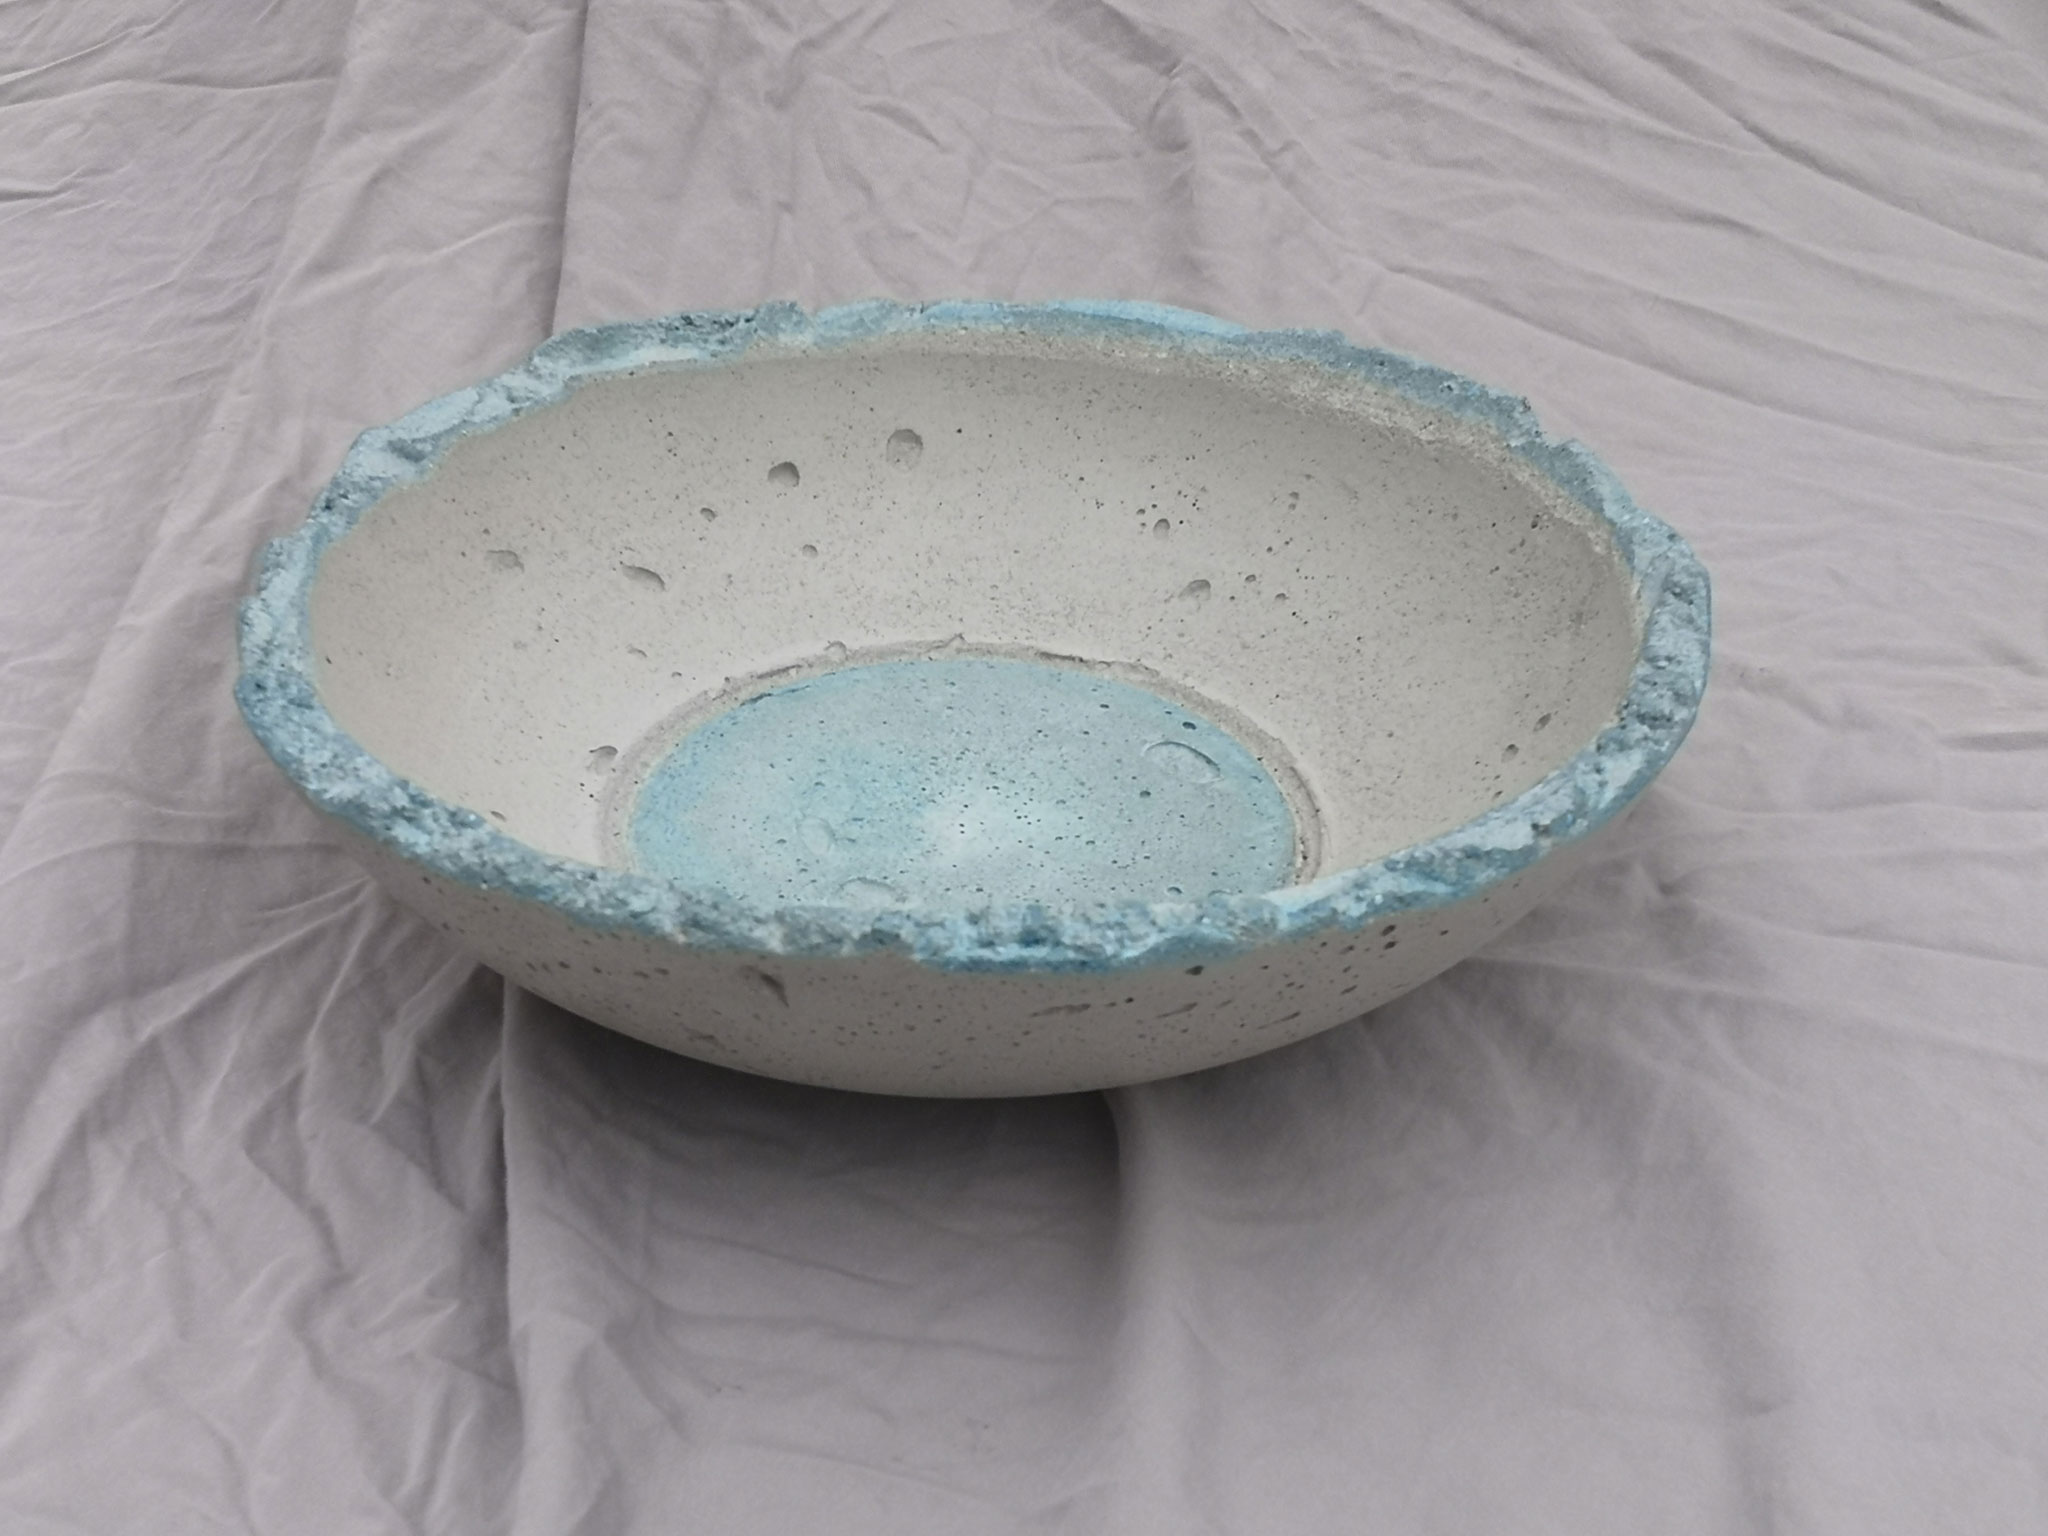 Concrete Art Bowl - Round - Cool Forest Green